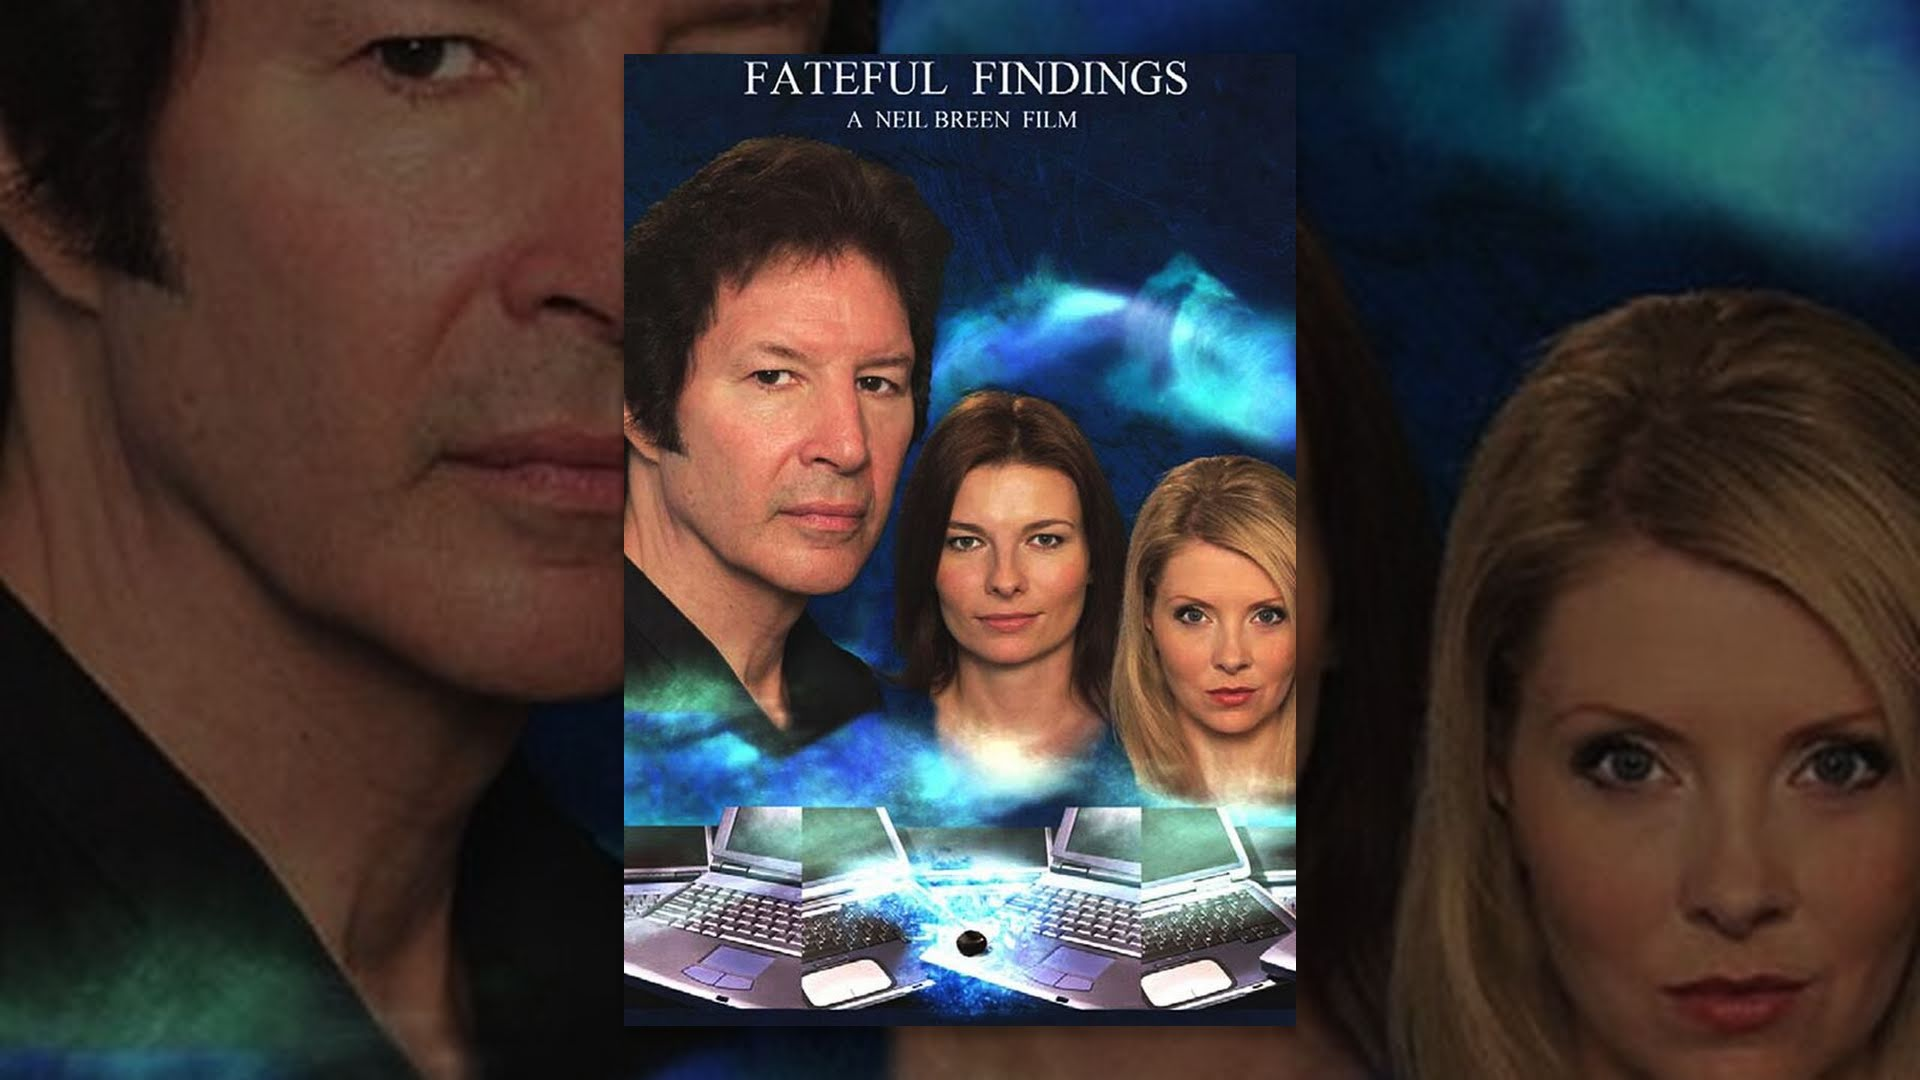 Fateful Findings - Full Movie NSFW